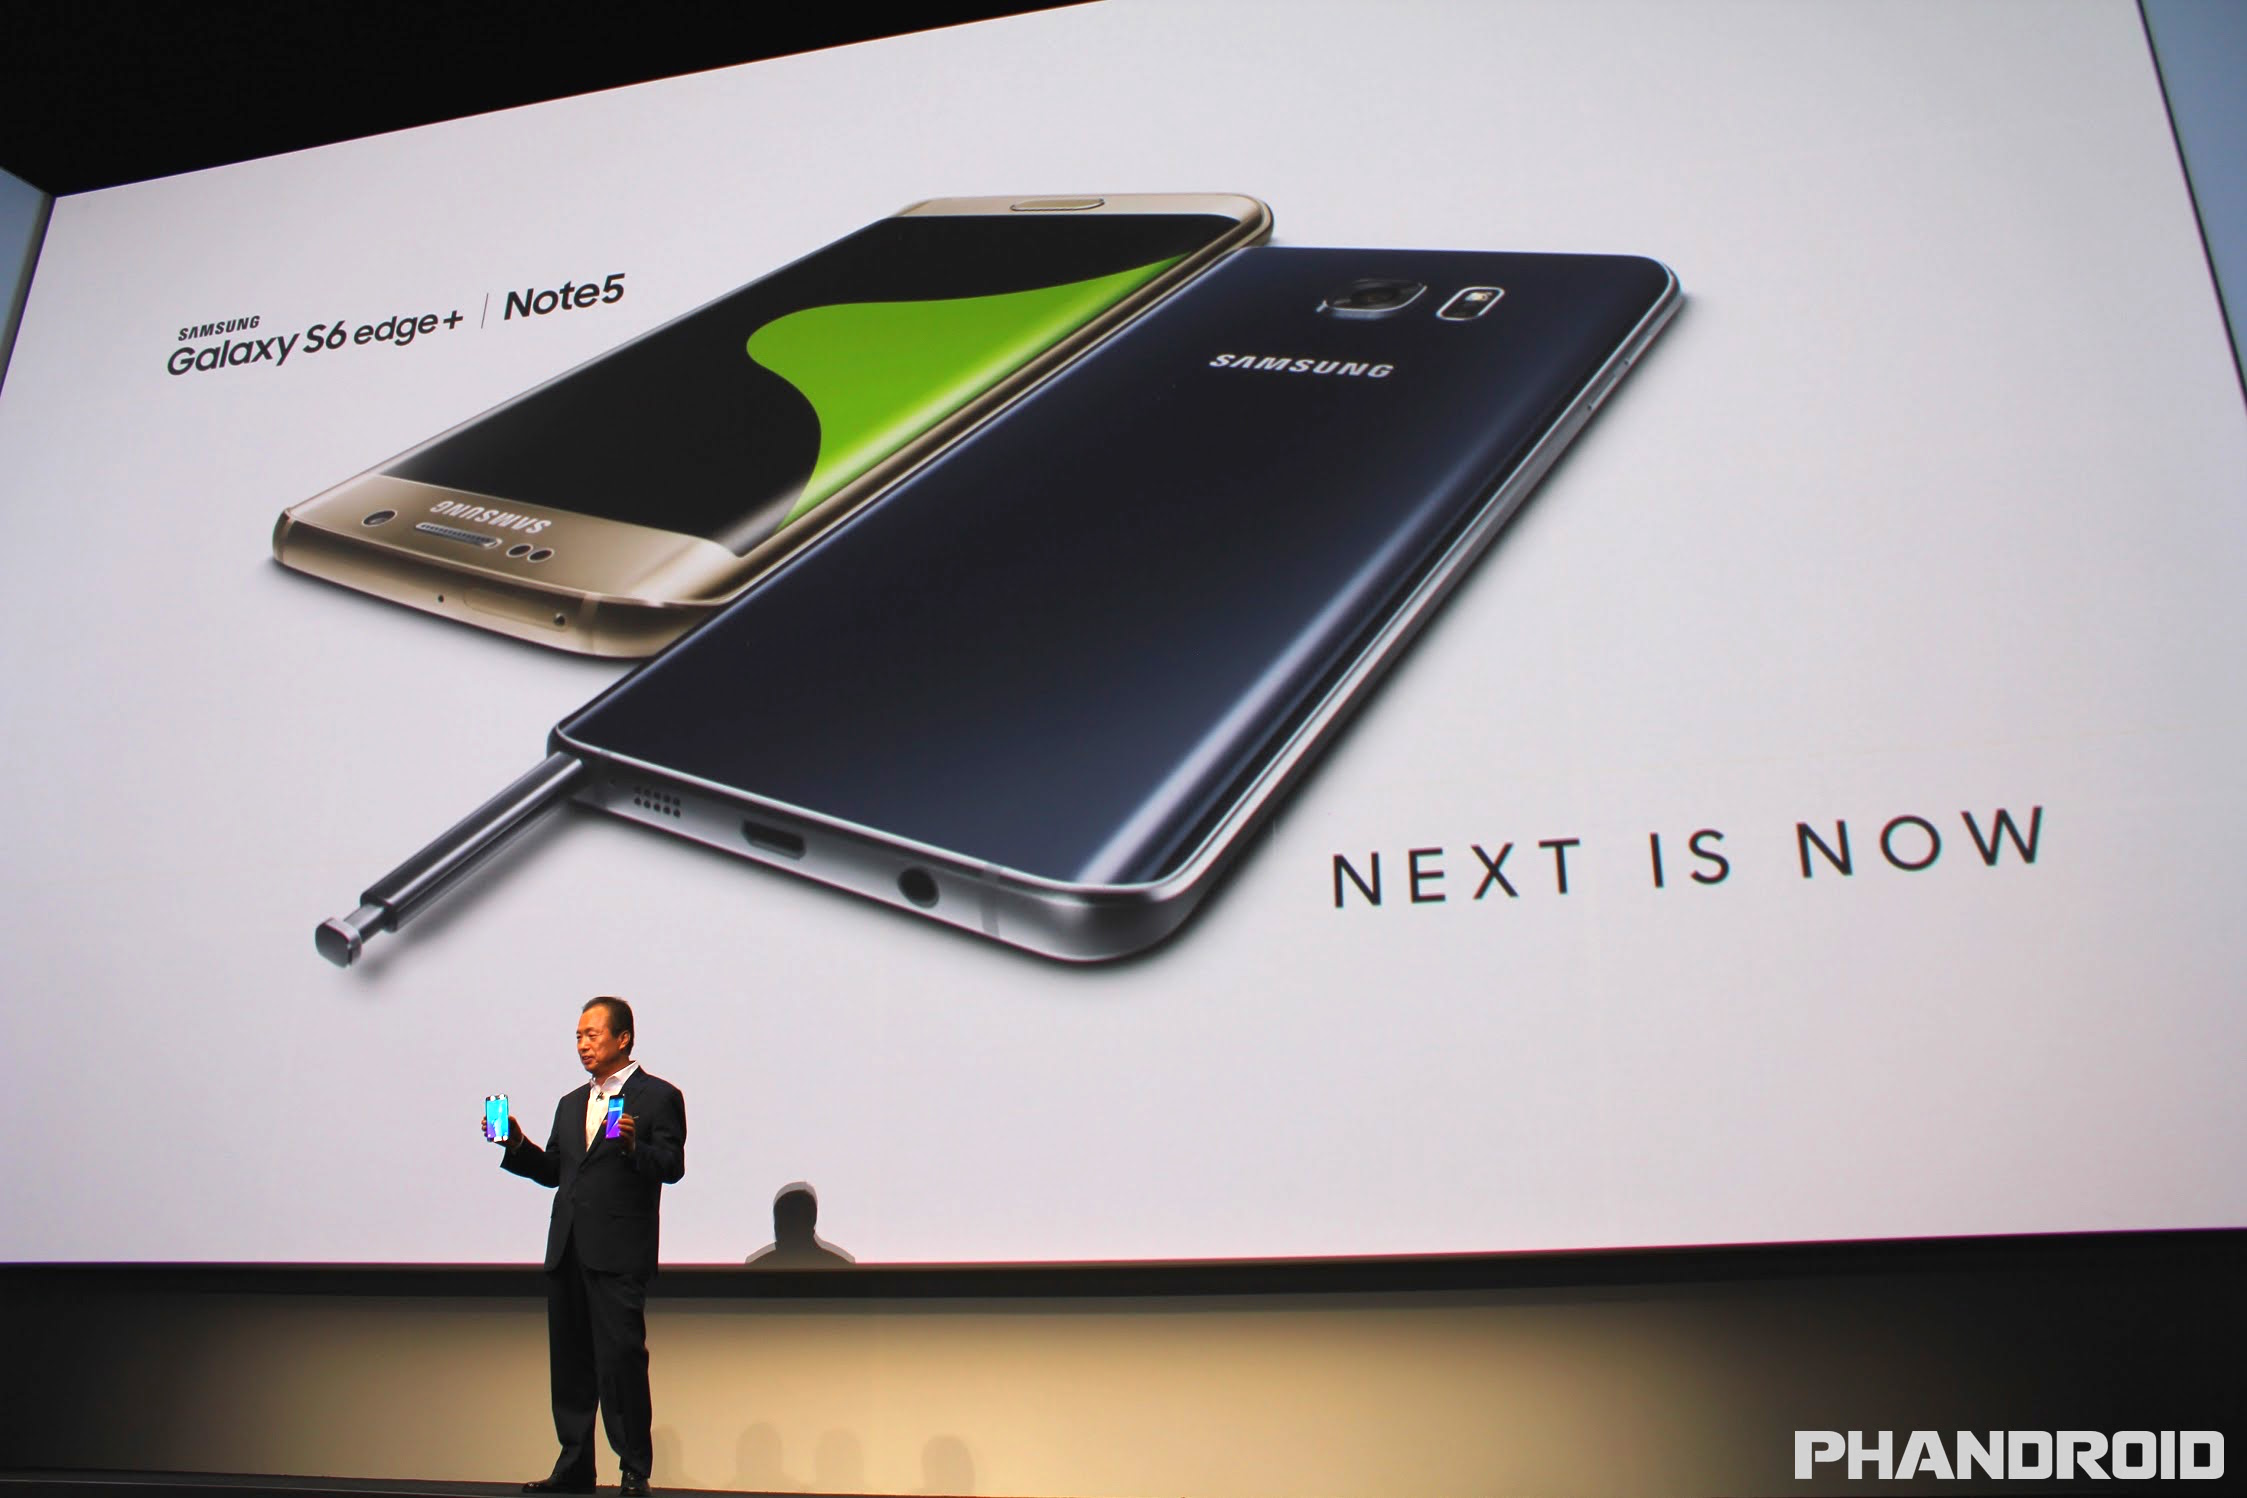 Notes 5 or Galaxy S6 Edge Plus: Which New Samsung Would You?